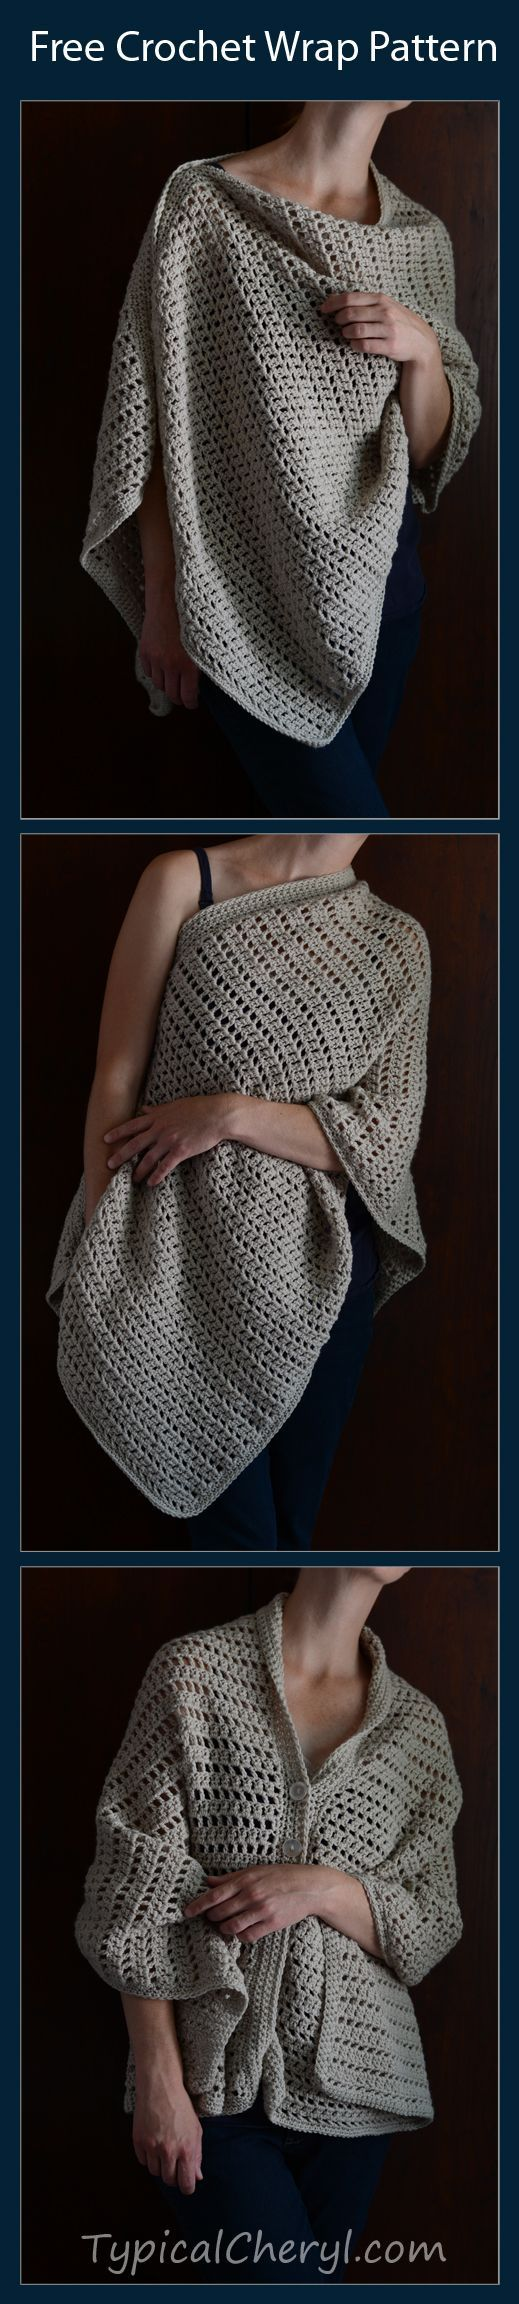 Simple Crochet Wrap By Cheryl - Free Crochet Pattern - (typicalcheryl)